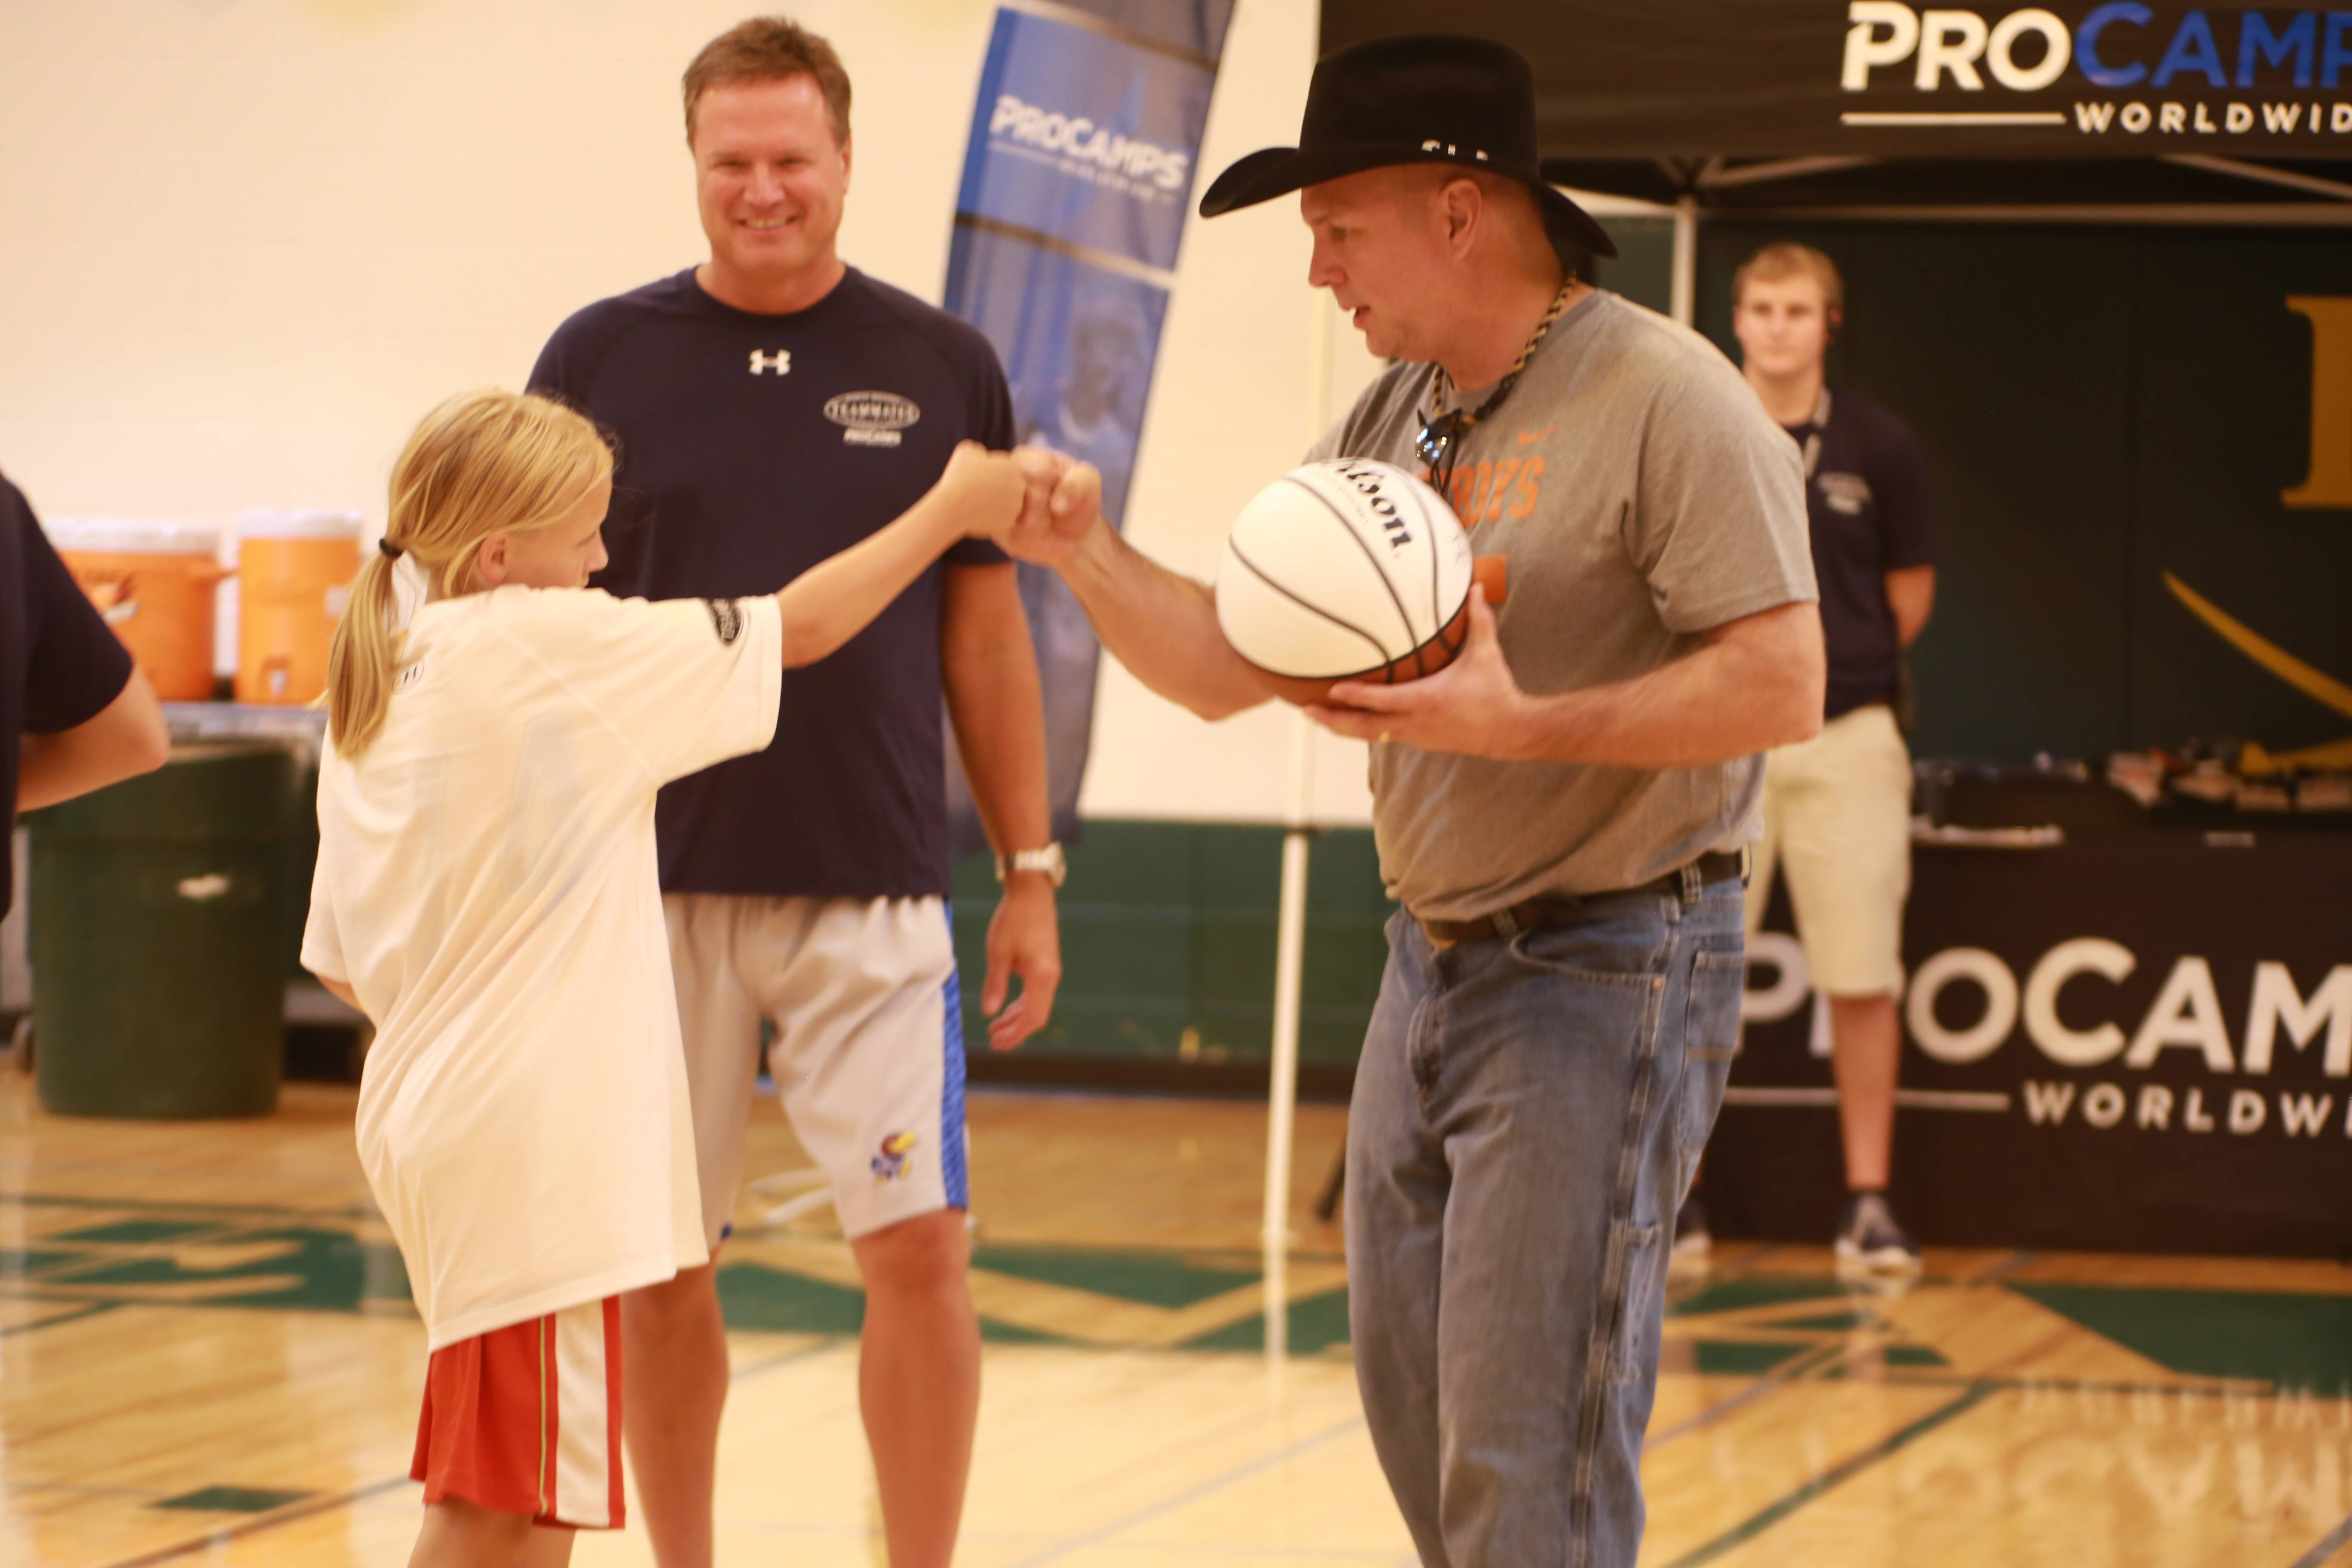 Country music superstar Garth Brooks, in his black hat, and his old college buddy, University of Kansas head basketball coach Bill Self, share a moment with a young camper Saturday at the ProCamps baskebaball camp at Elk Grove High School.